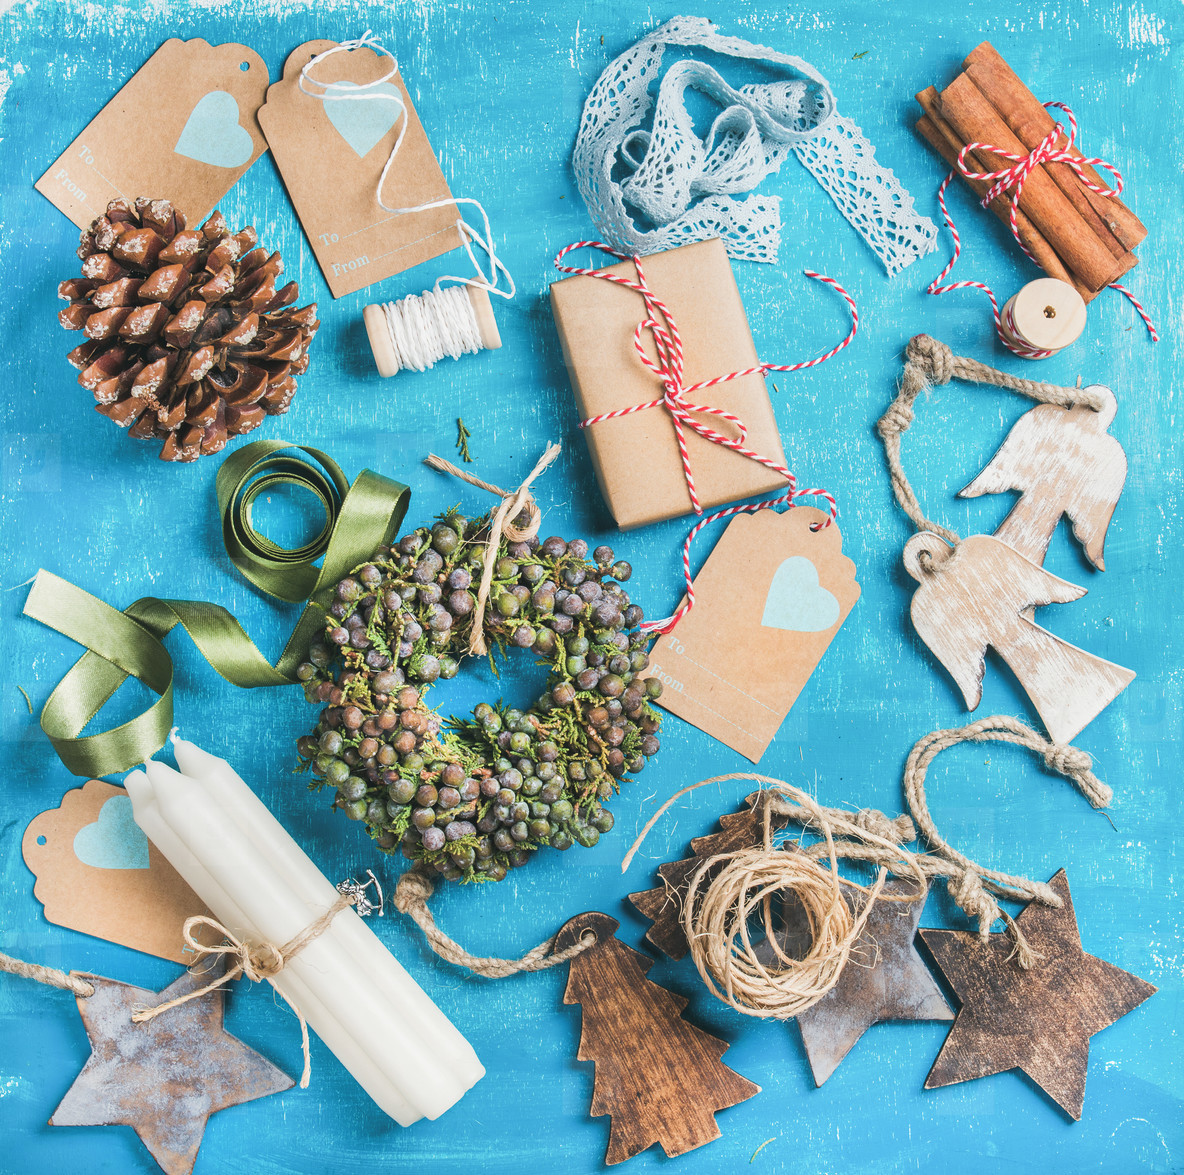 Small Christmas decorative wreath and materials for making decoration